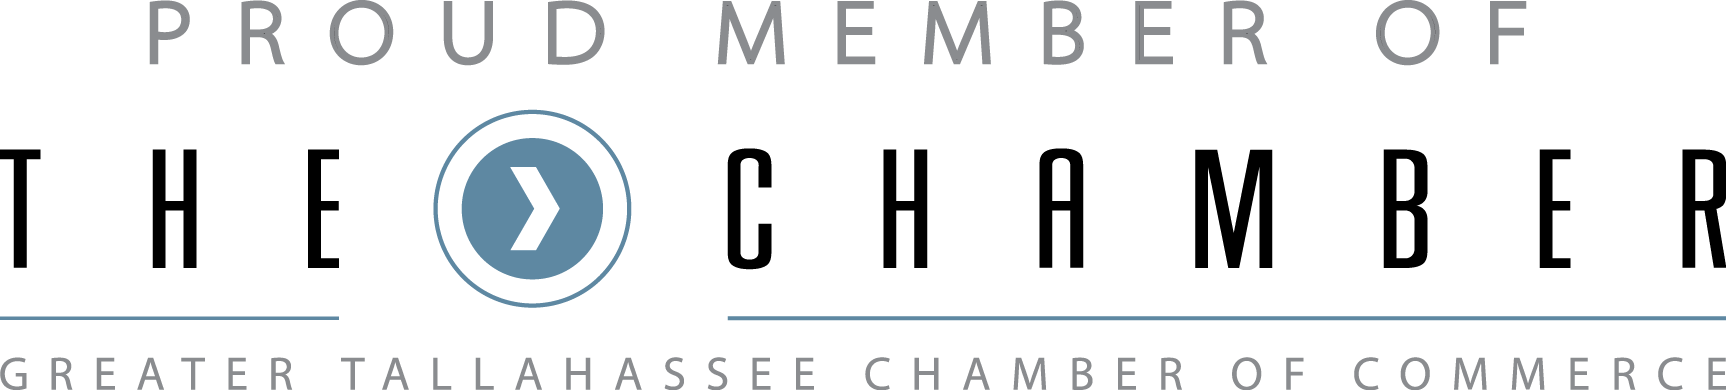 TallahasseeFLCOC_6741_Chamber.ProudMember Logo for web.png